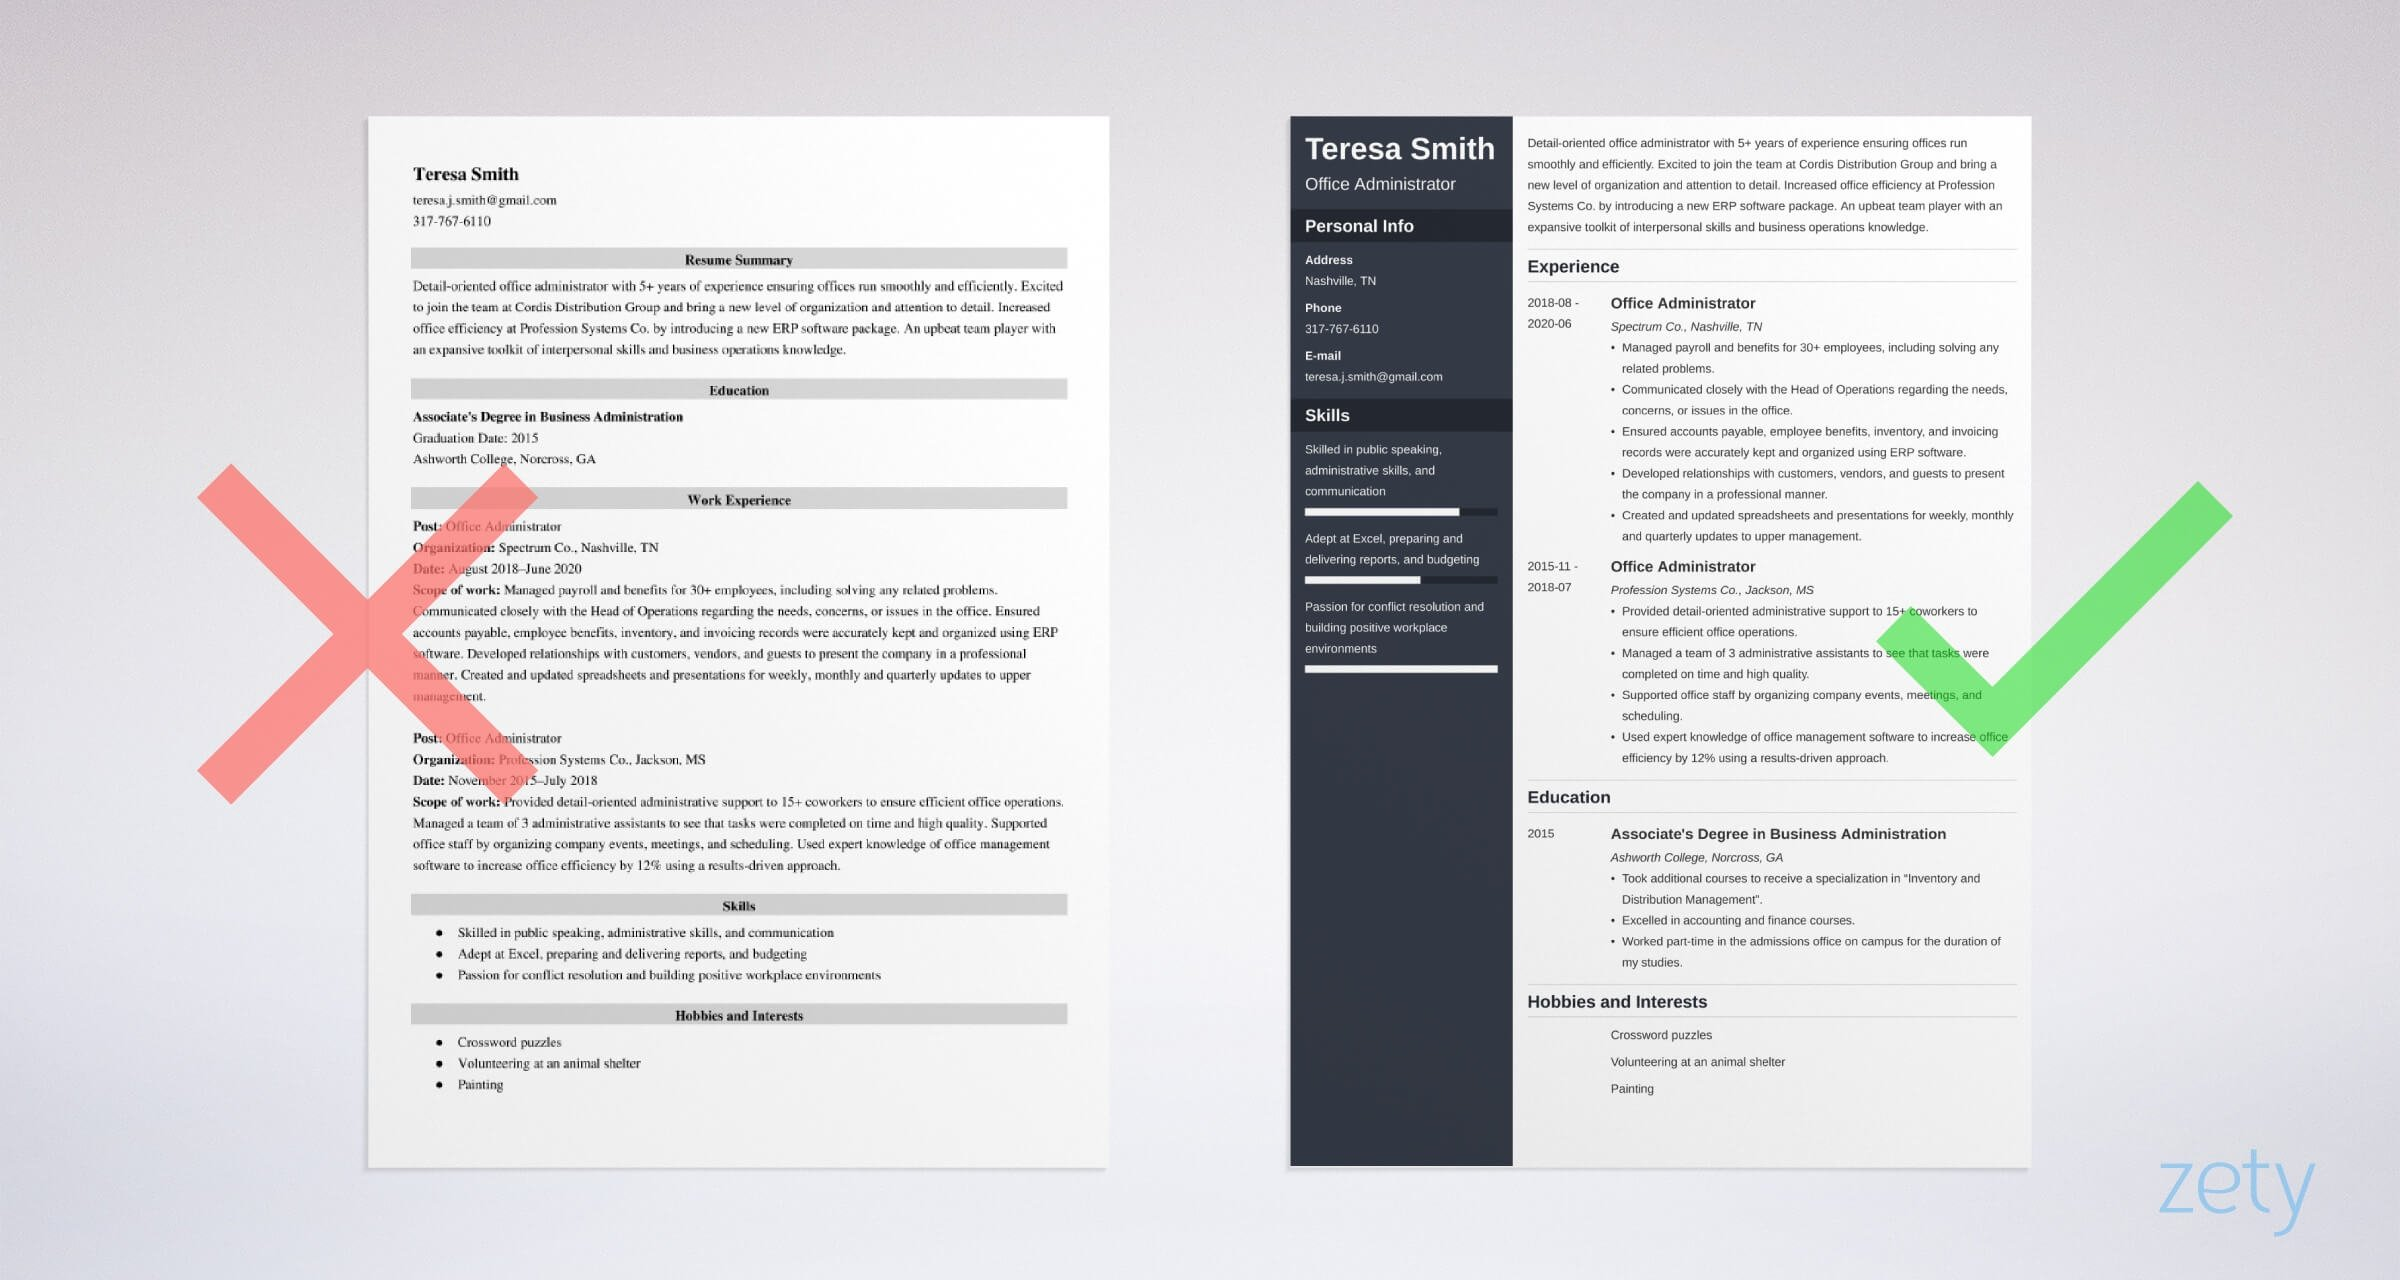 office administrator resume examples and guide tips free sample example zety us builder Resume Office Administrator Resume Free Sample